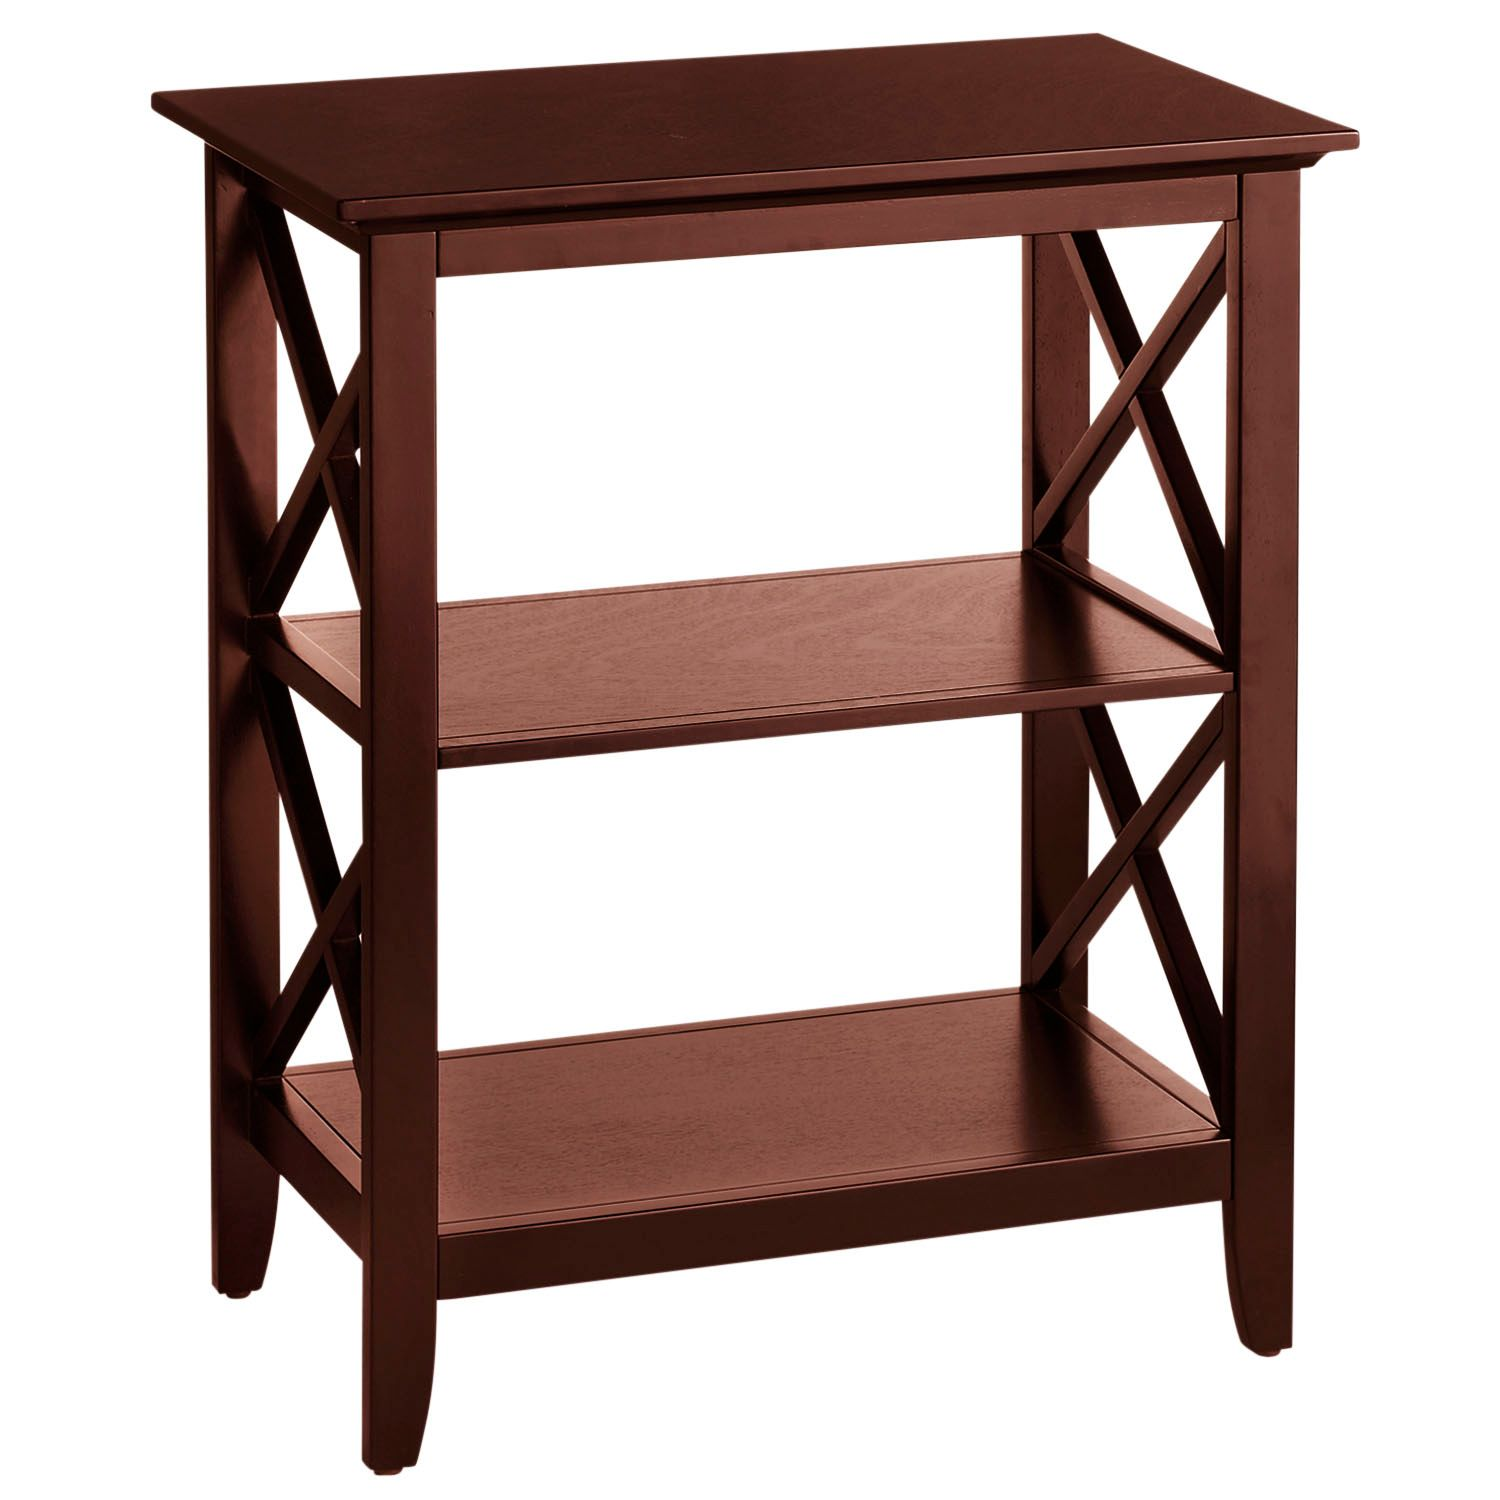 kenzie espresso brown accent table pier imports shelf outdoor furniture end tables garden patio living room sets modern white marble coffee cabinet with glass doors small antique